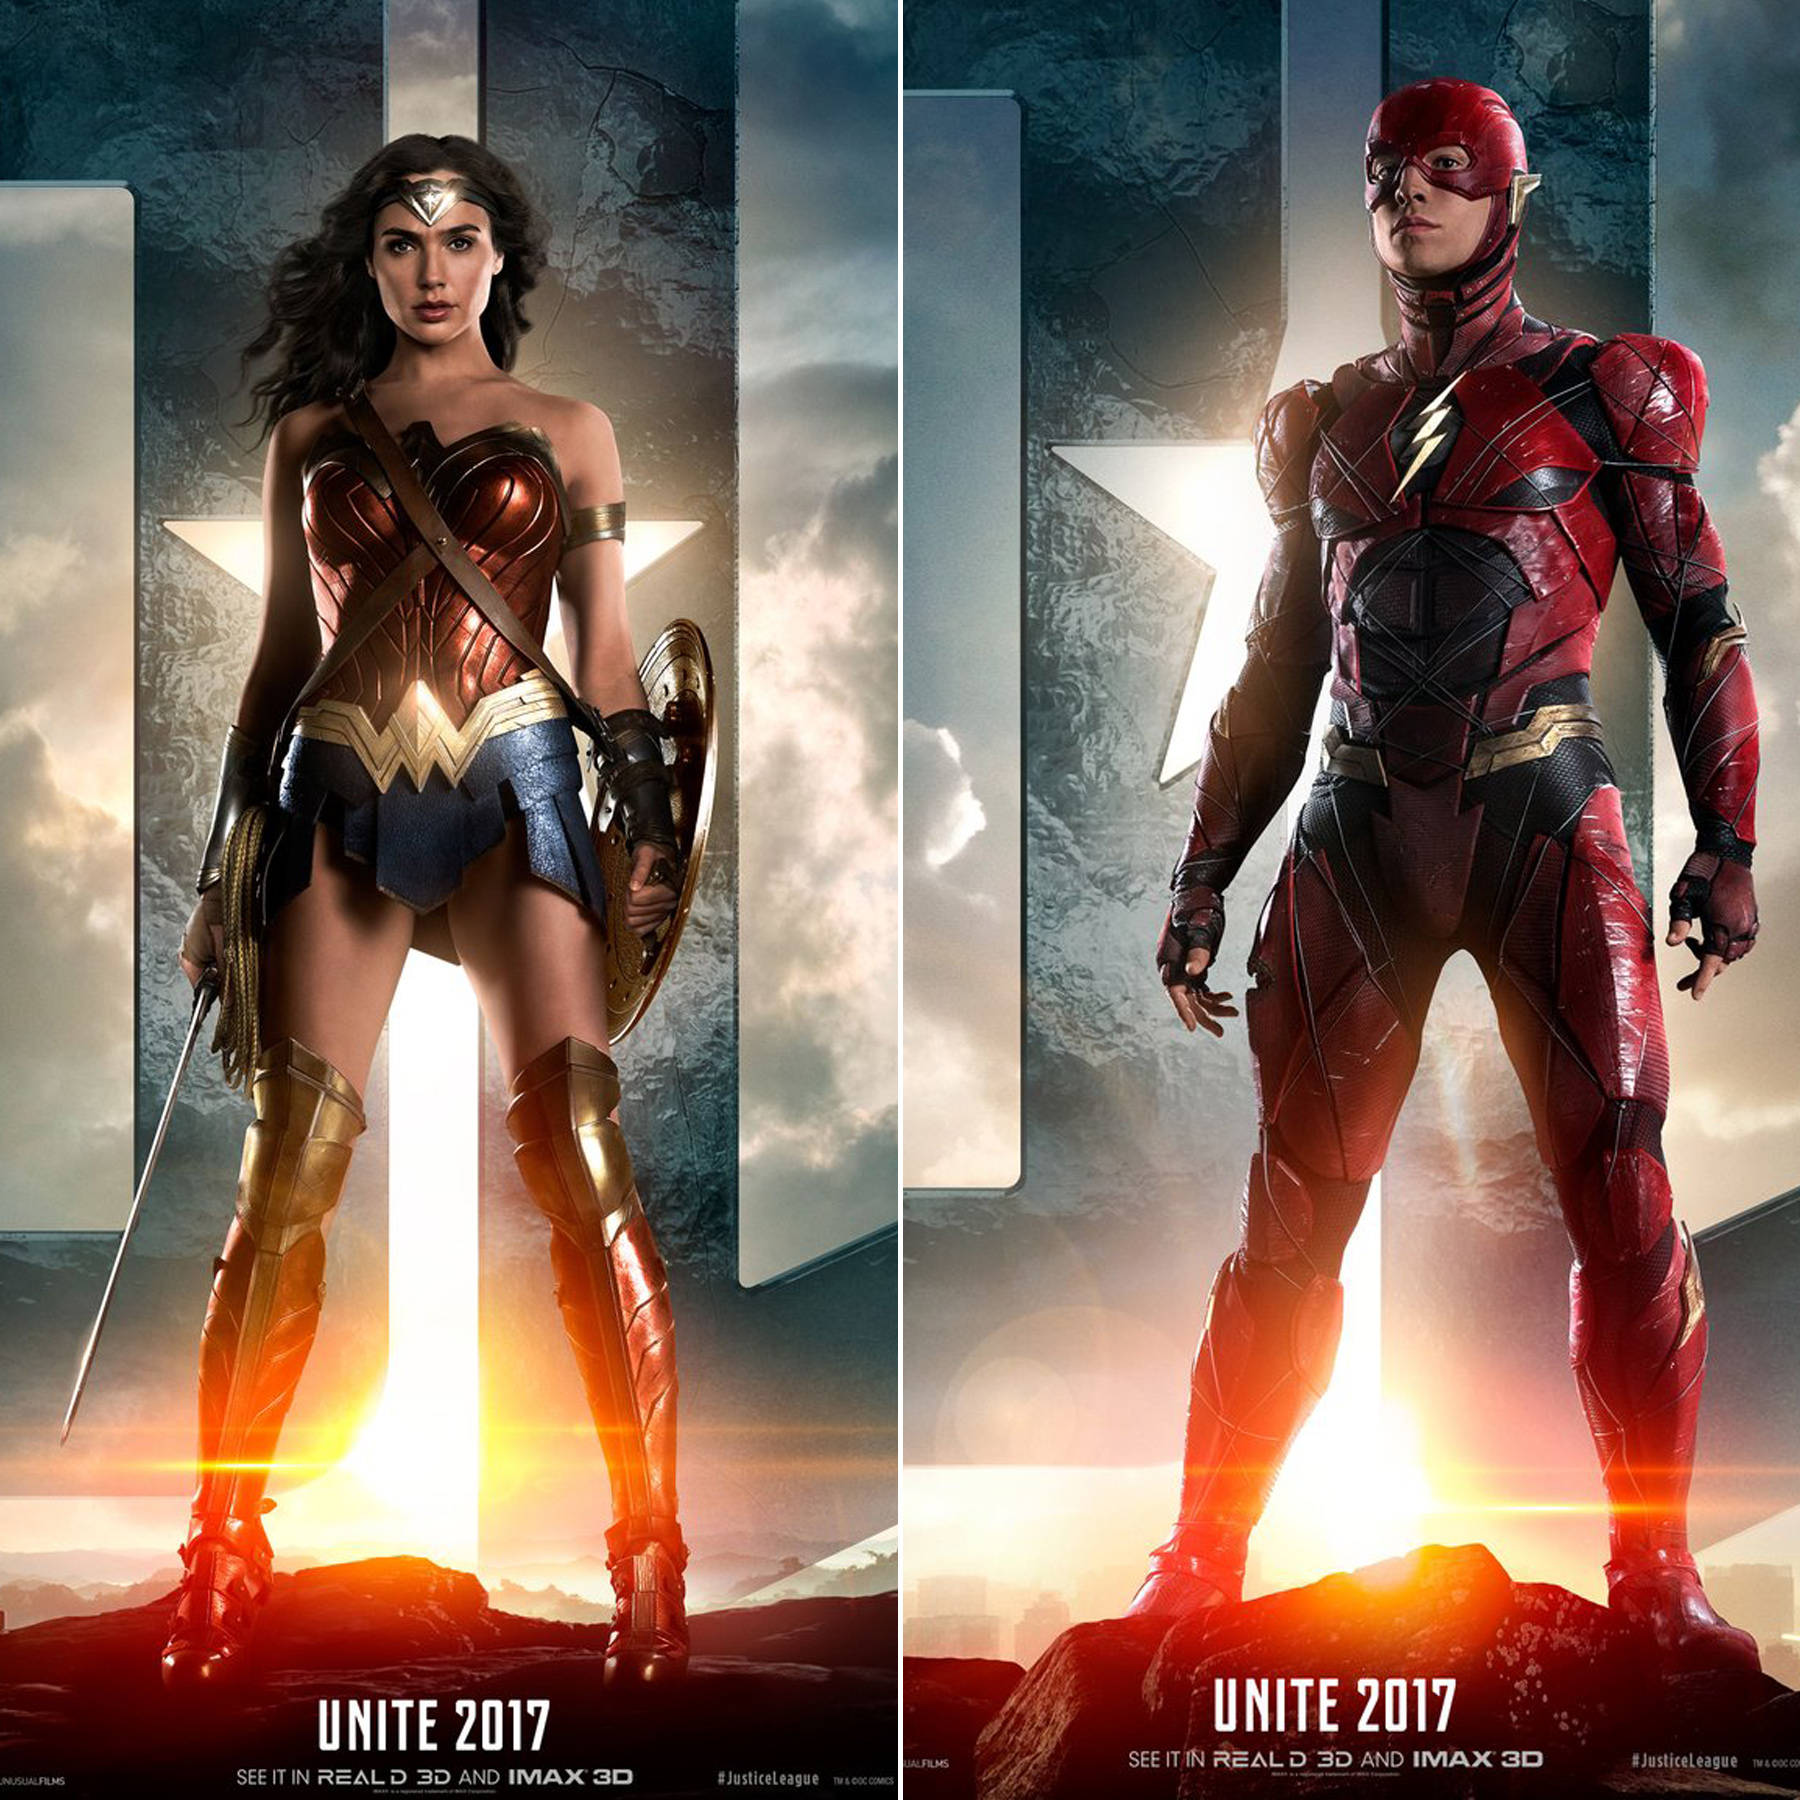 Justice League Movie Poster Teasers